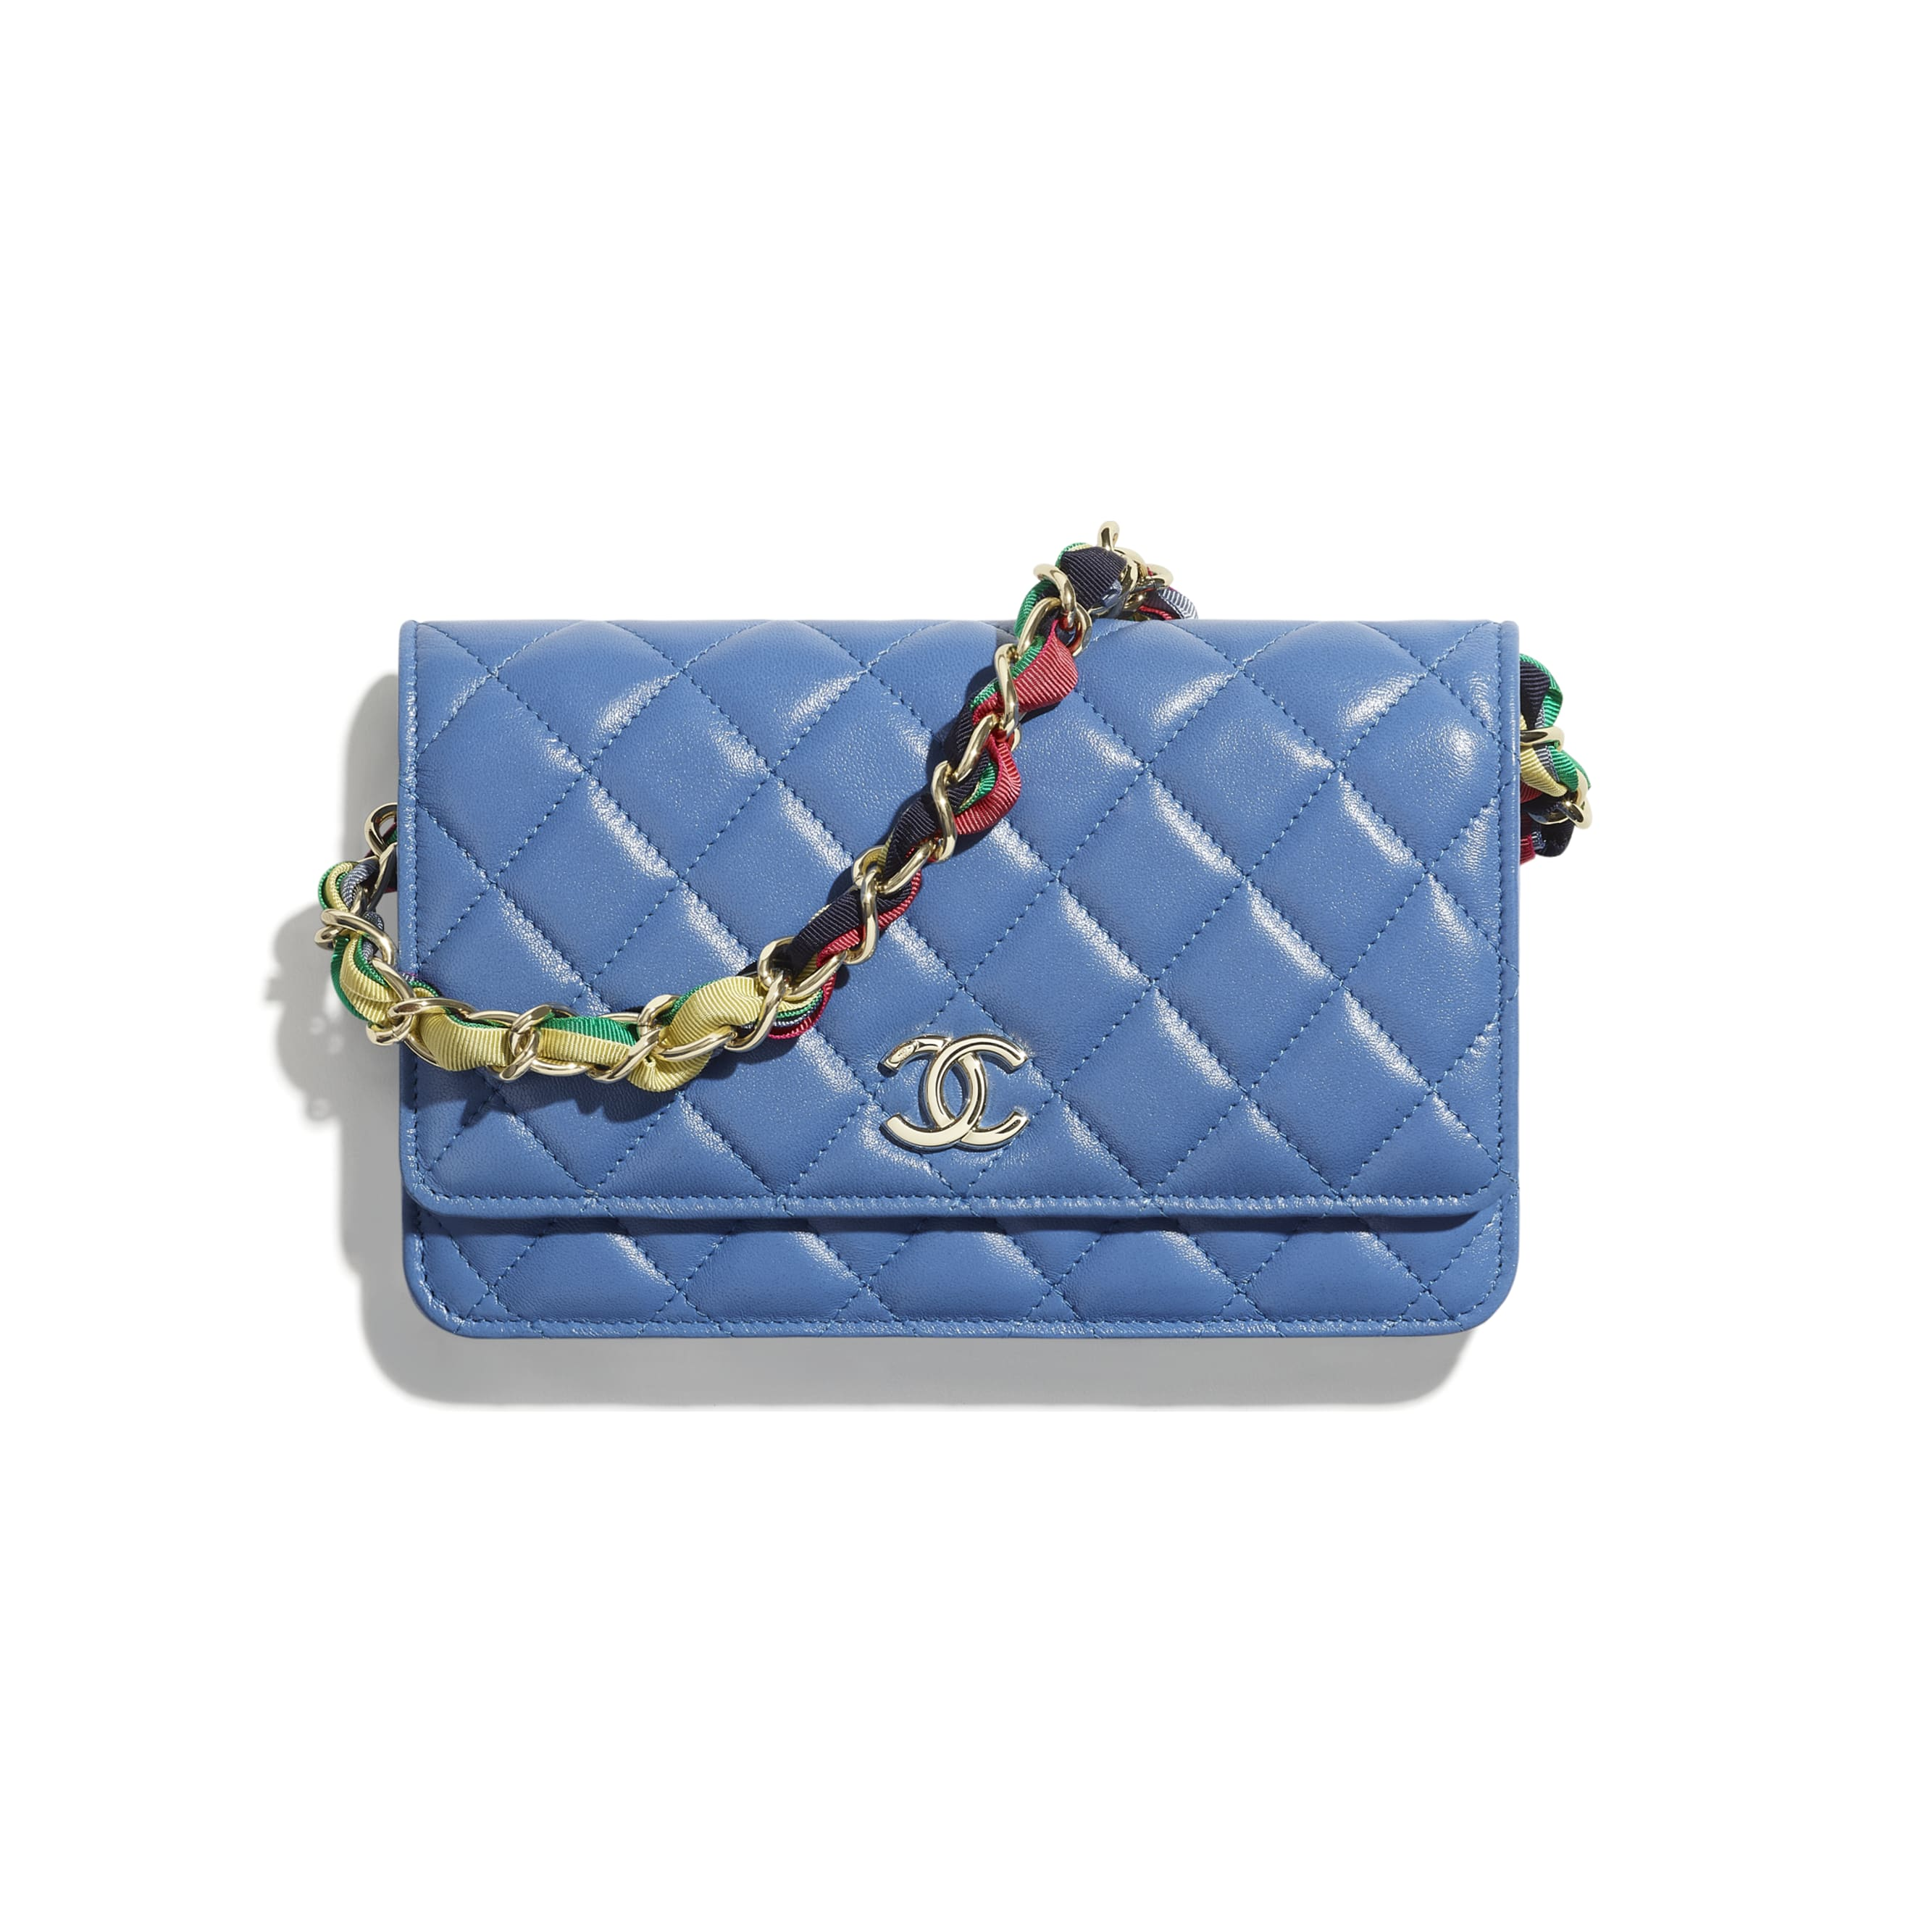 Wallet On Chain - Blue - Shiny Lambskin, Ribbon & Gold-Tone Metal - CHANEL - Default view - see standard sized version